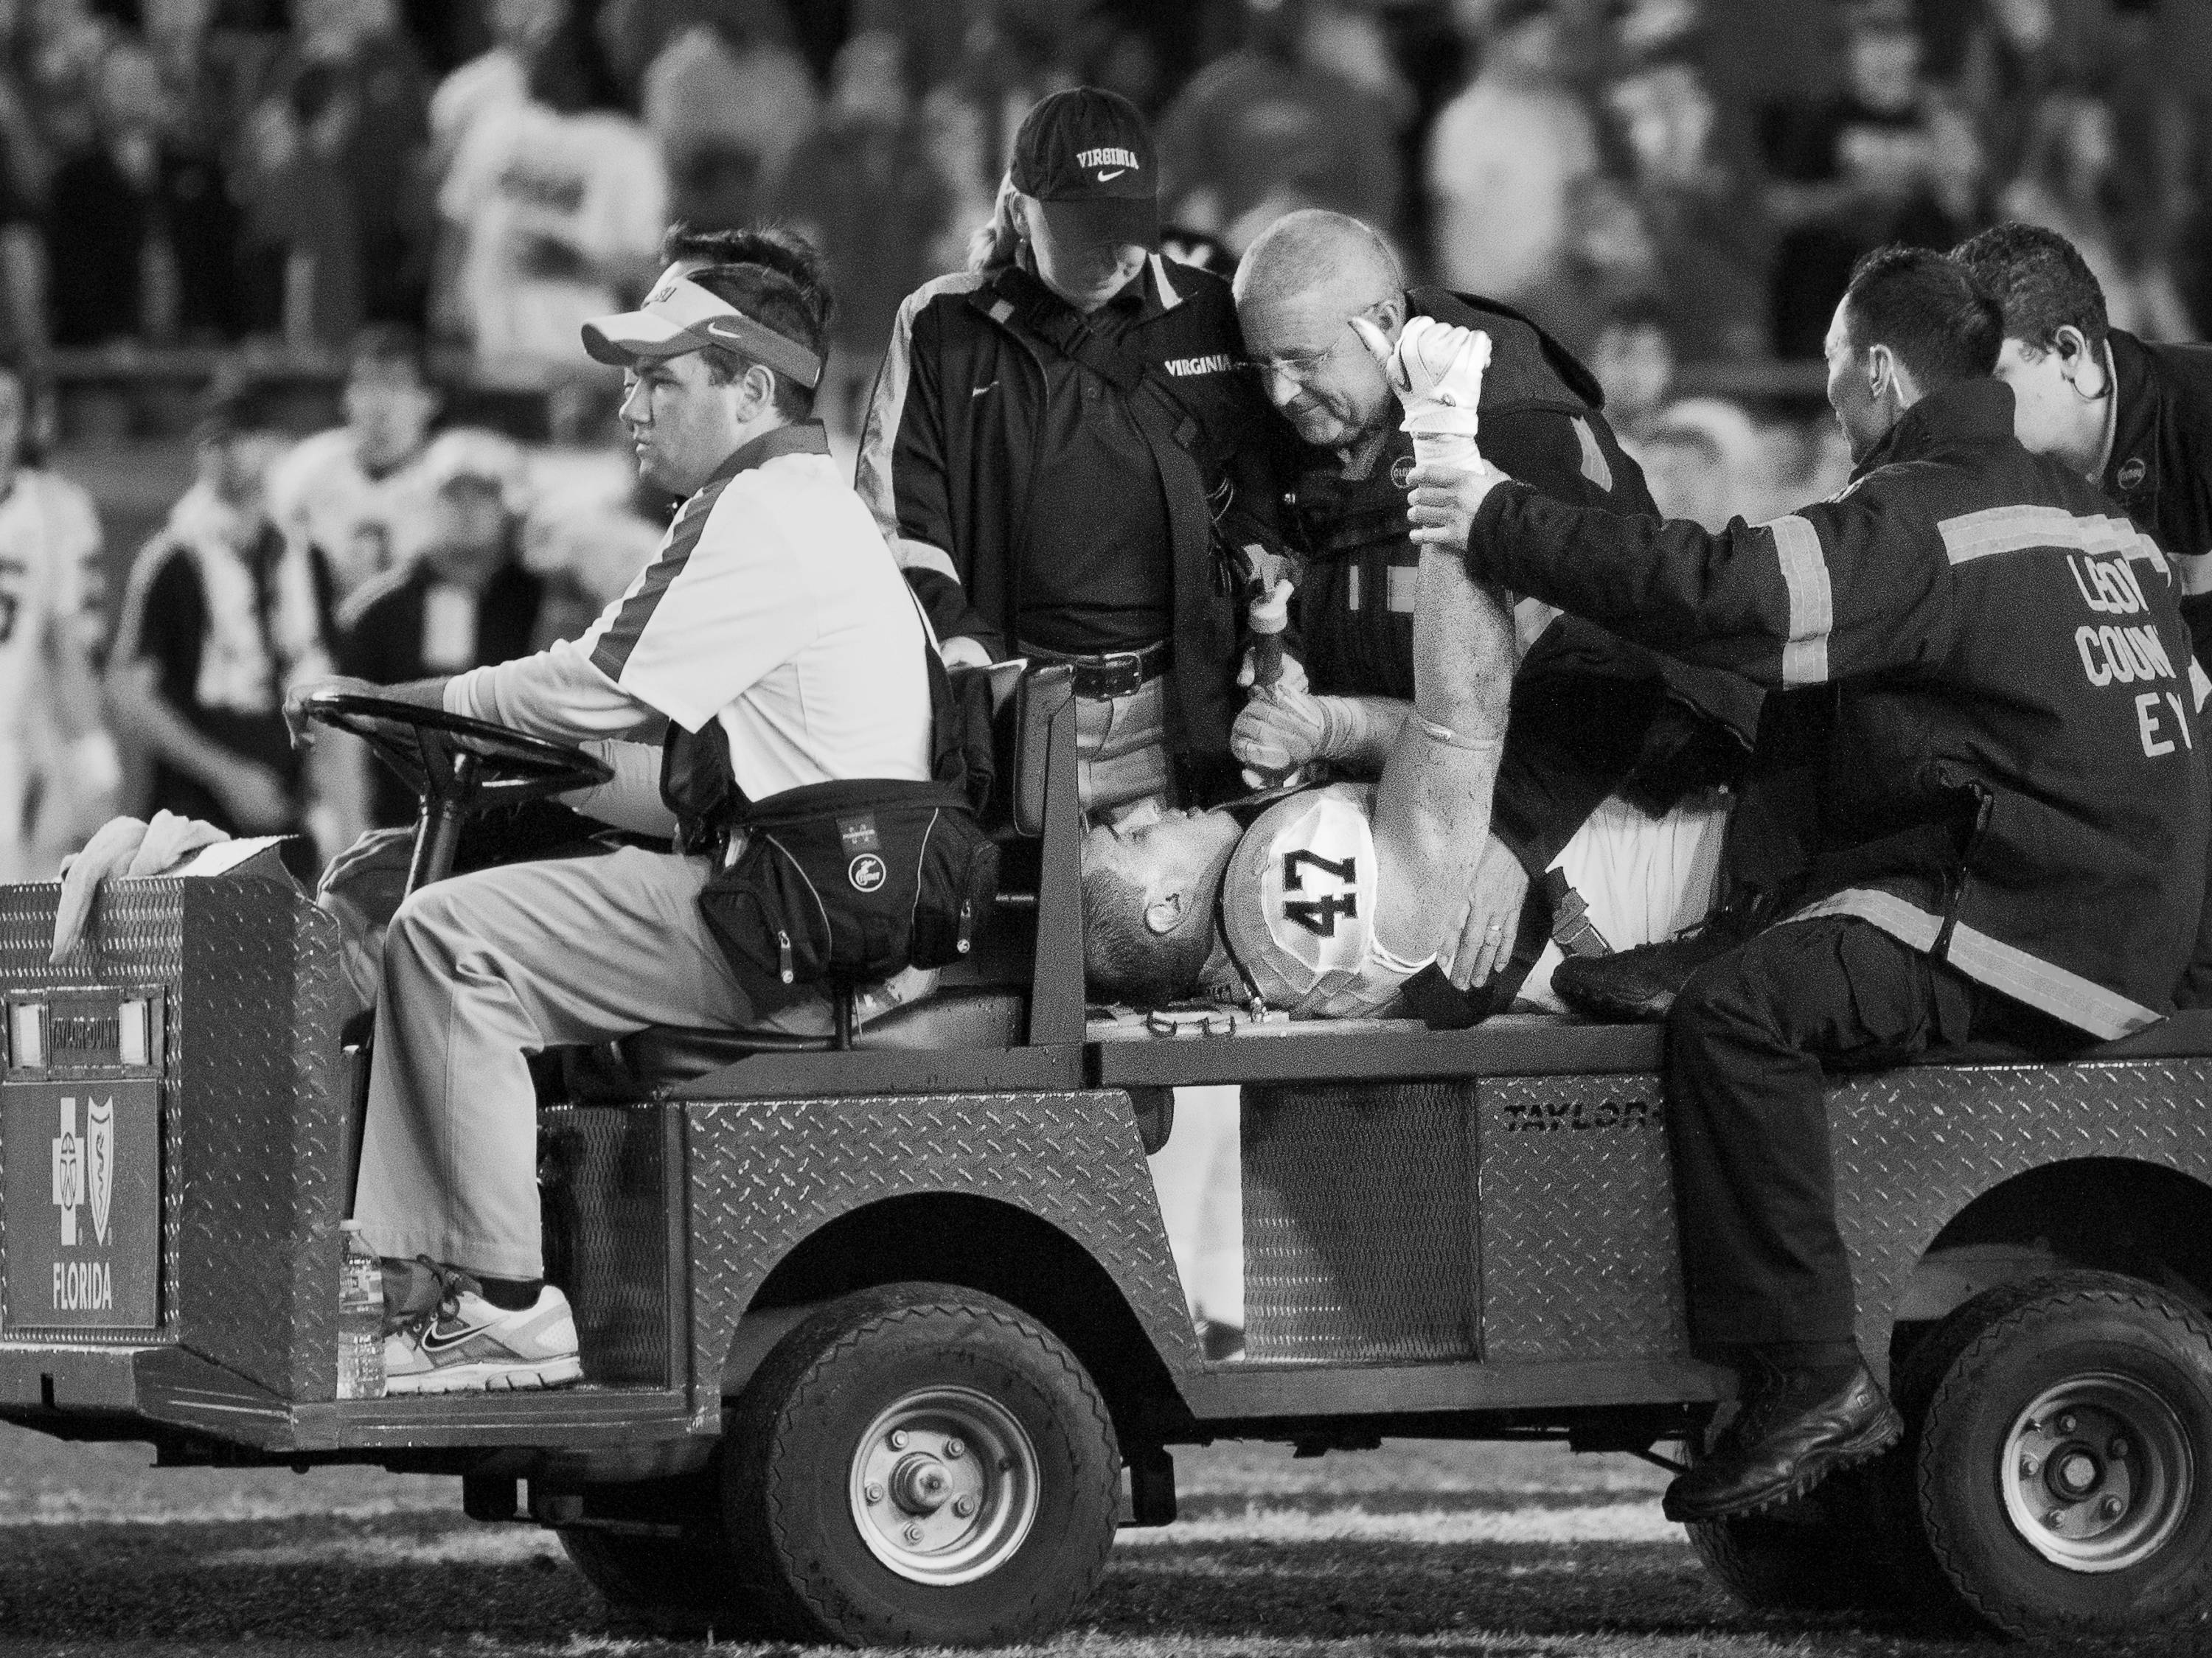 An EMT helps Virginia's Bill Schautz give the crowd a thumbs up as he leaves the field on a cart during the football game against Virginia on November 29, 2011.